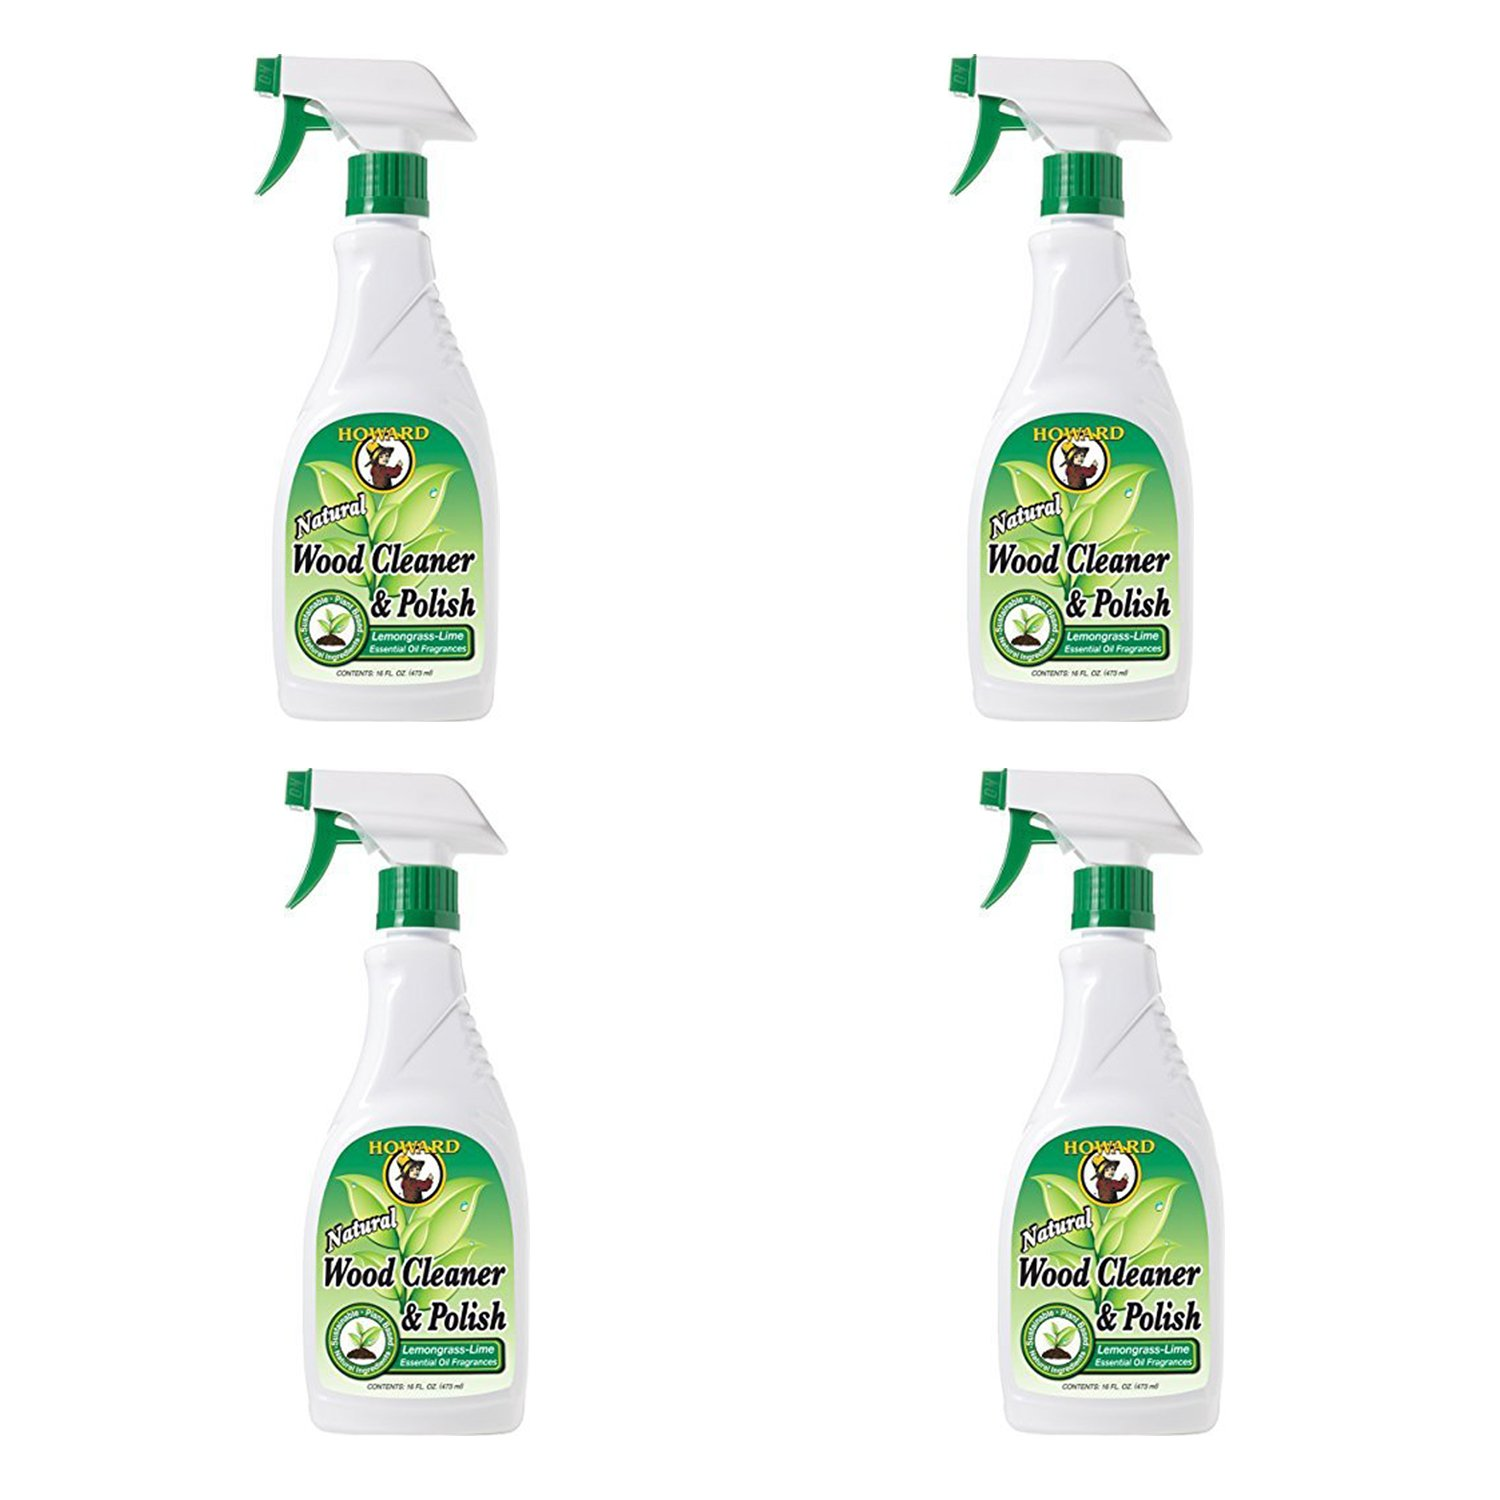 Howard - WC5012 Wood Cleaner and Polish, (16-Ounce), (Lemongrass-Lime) (4-Pack)